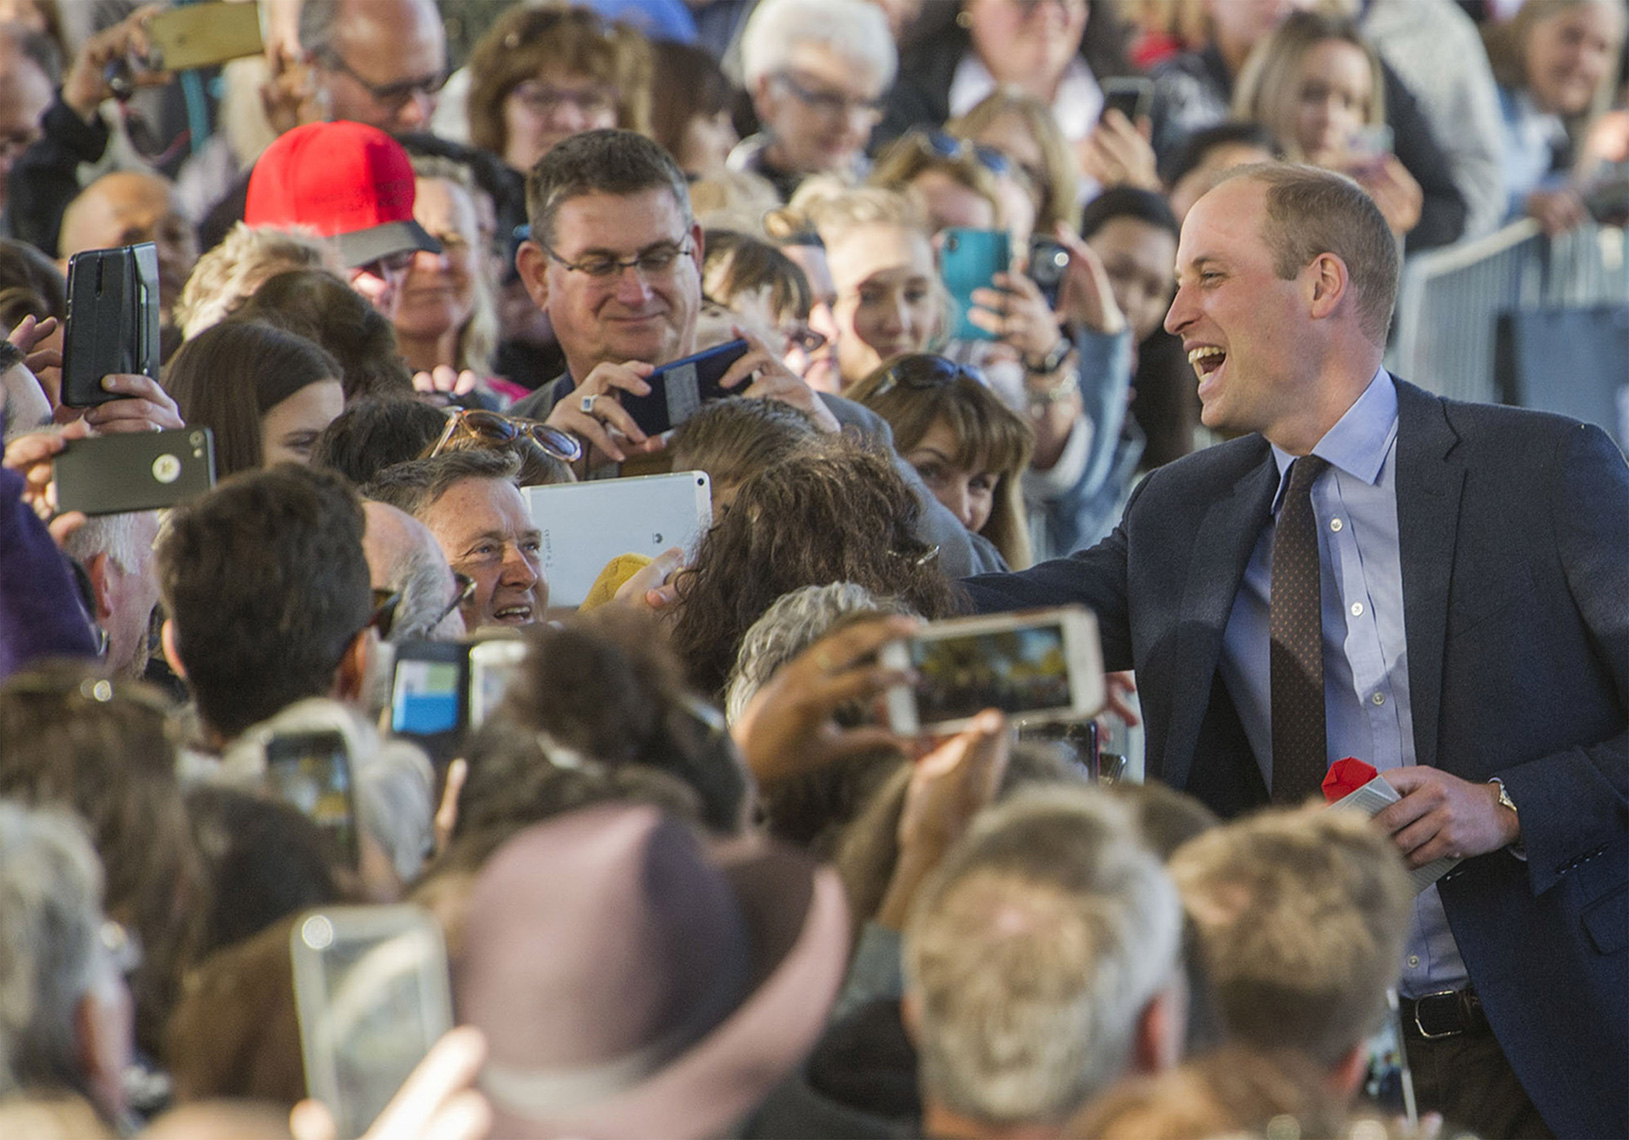 20190426_prince-william-in-chch_web_photoreporters_032